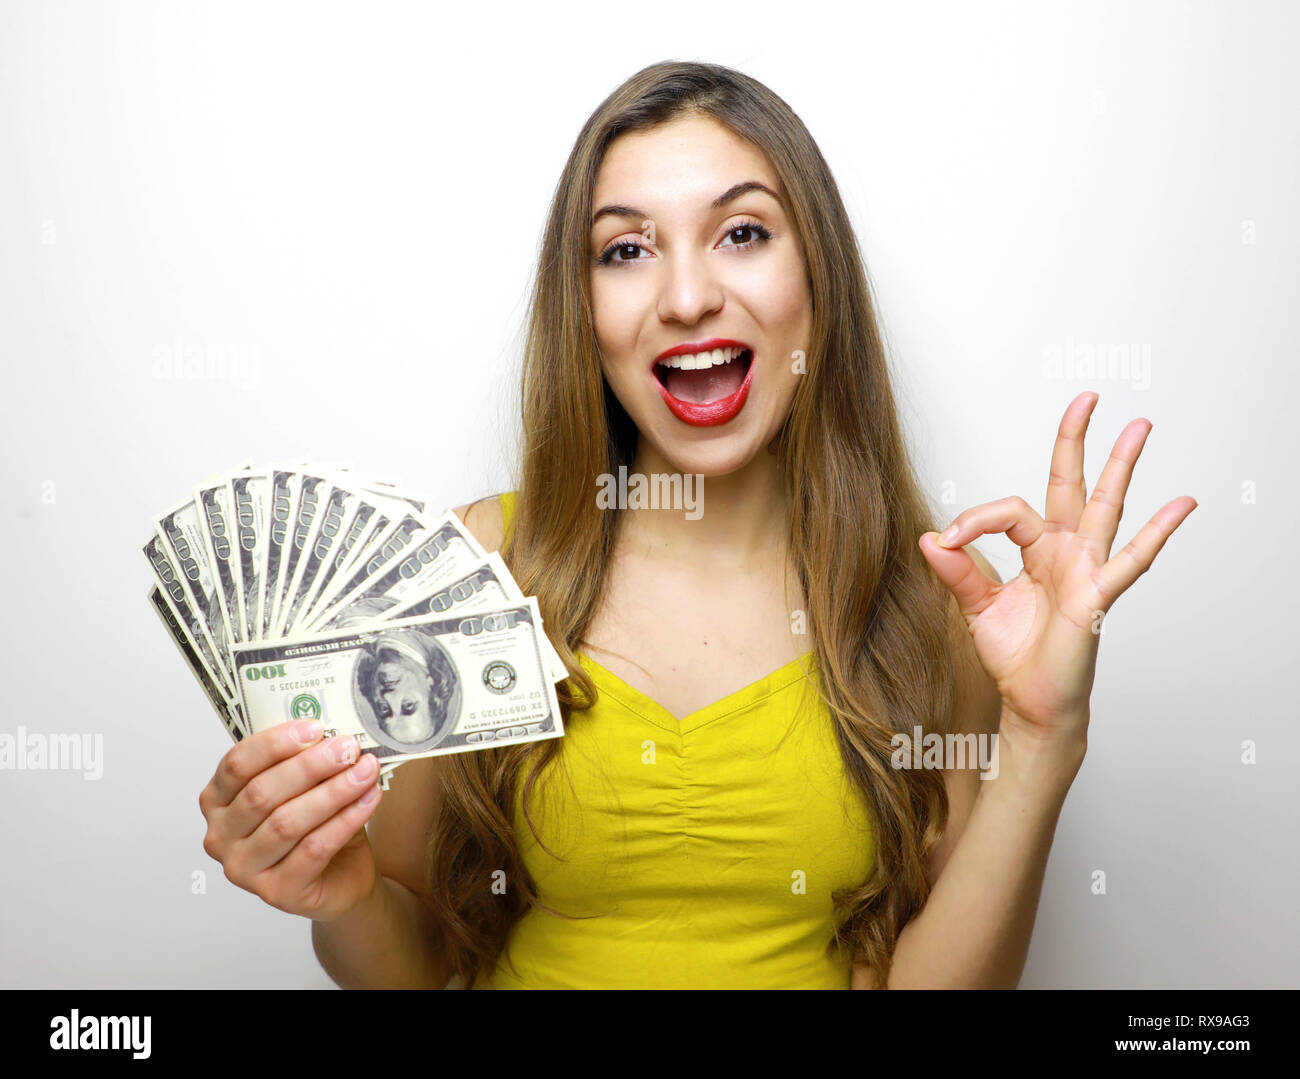 Successful american woman holding fan of money dollar bills and showing ok sign isolated over white background - Stock Image